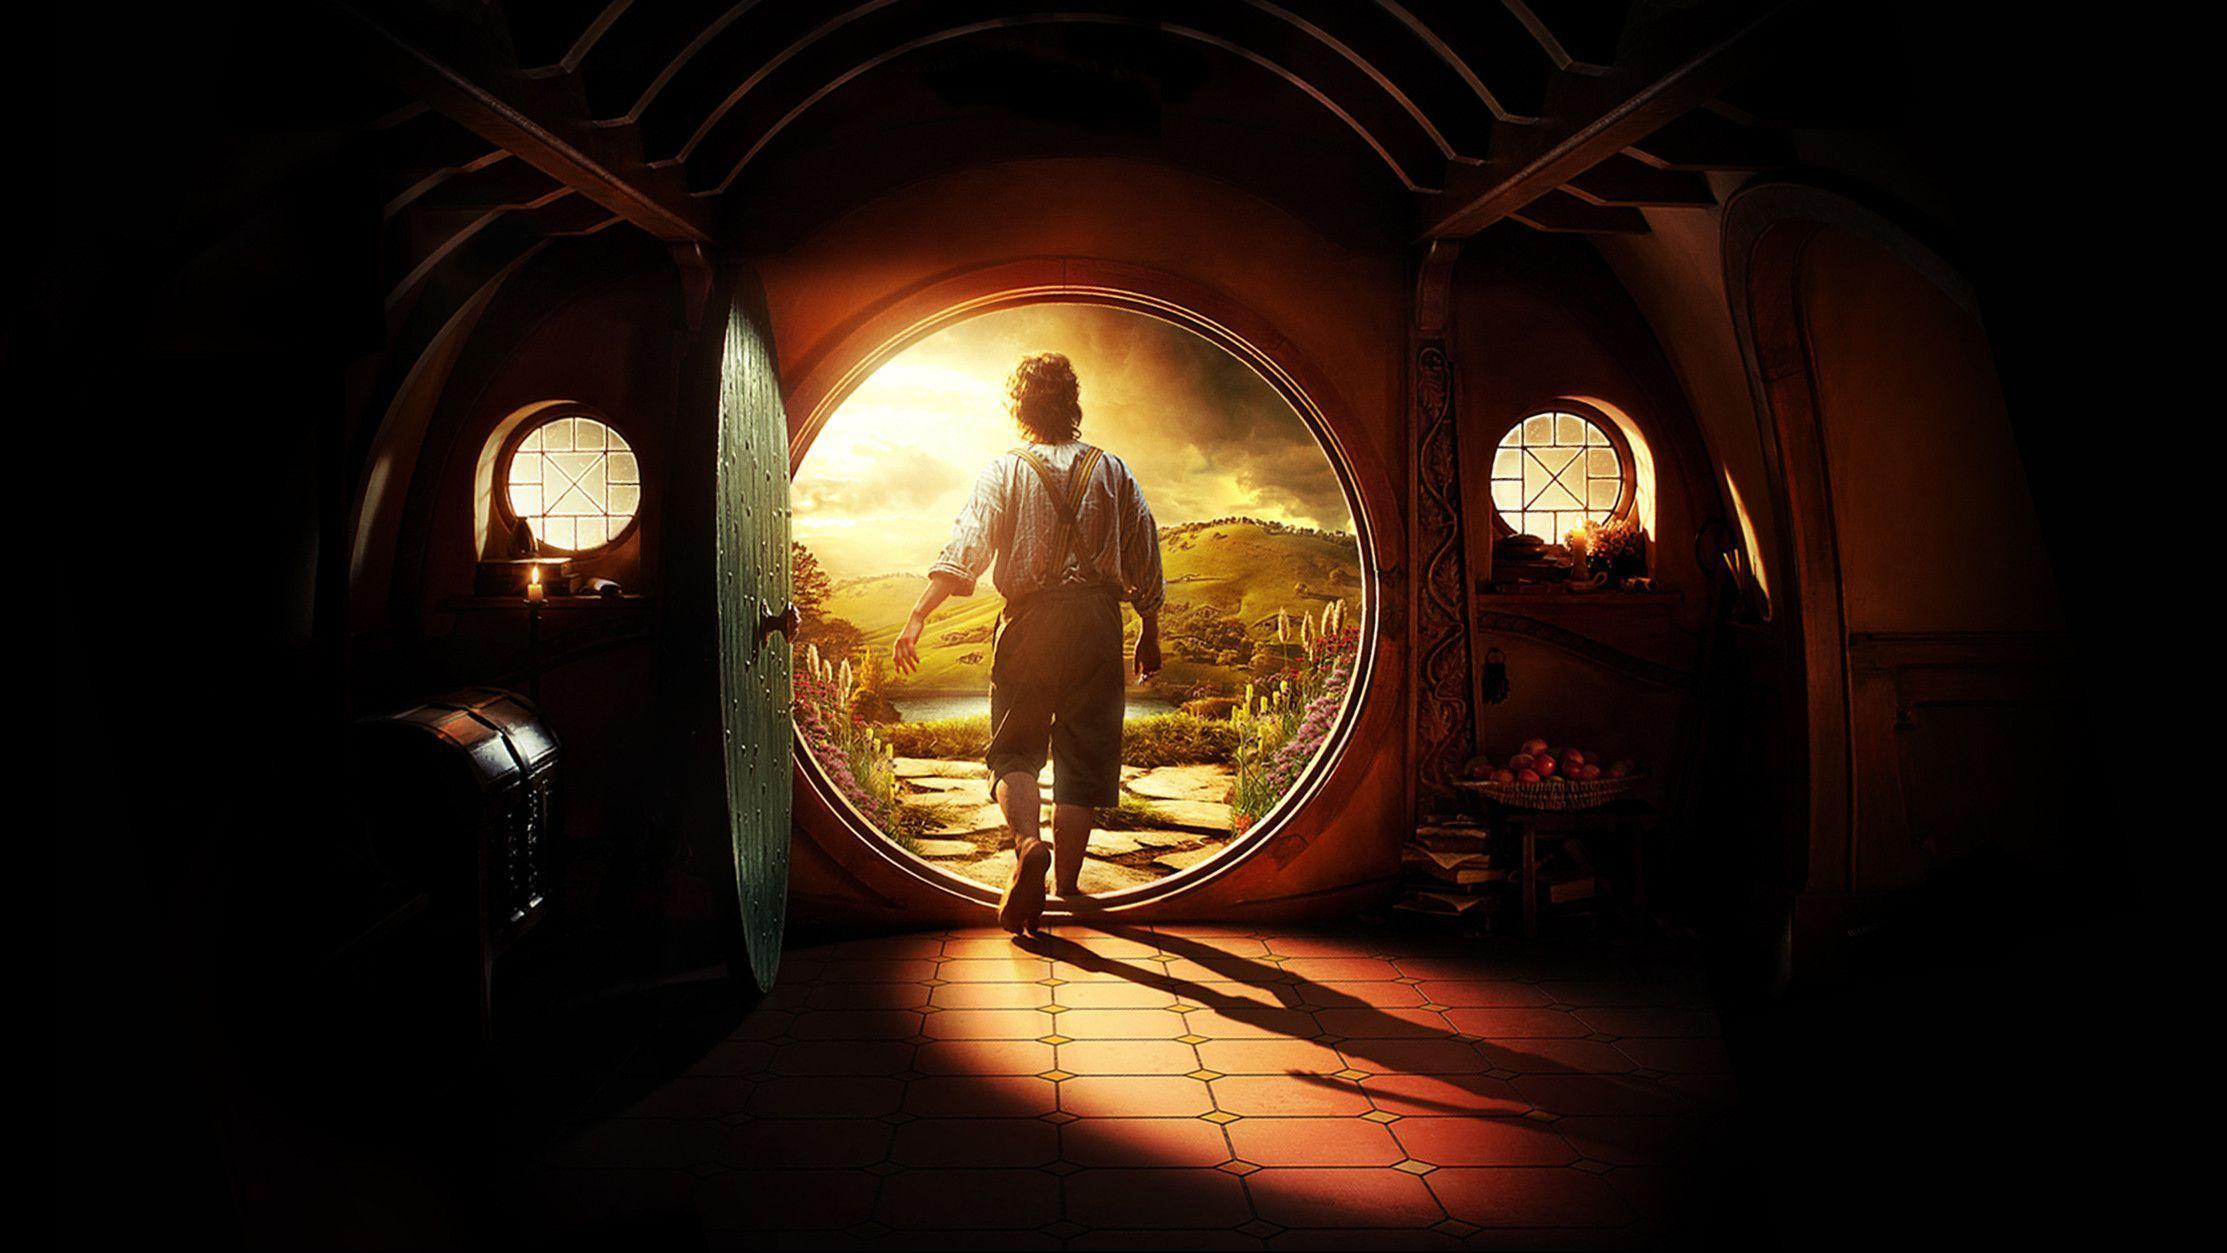 The Hobbit Wallpapers HD - Wallpaper Cave